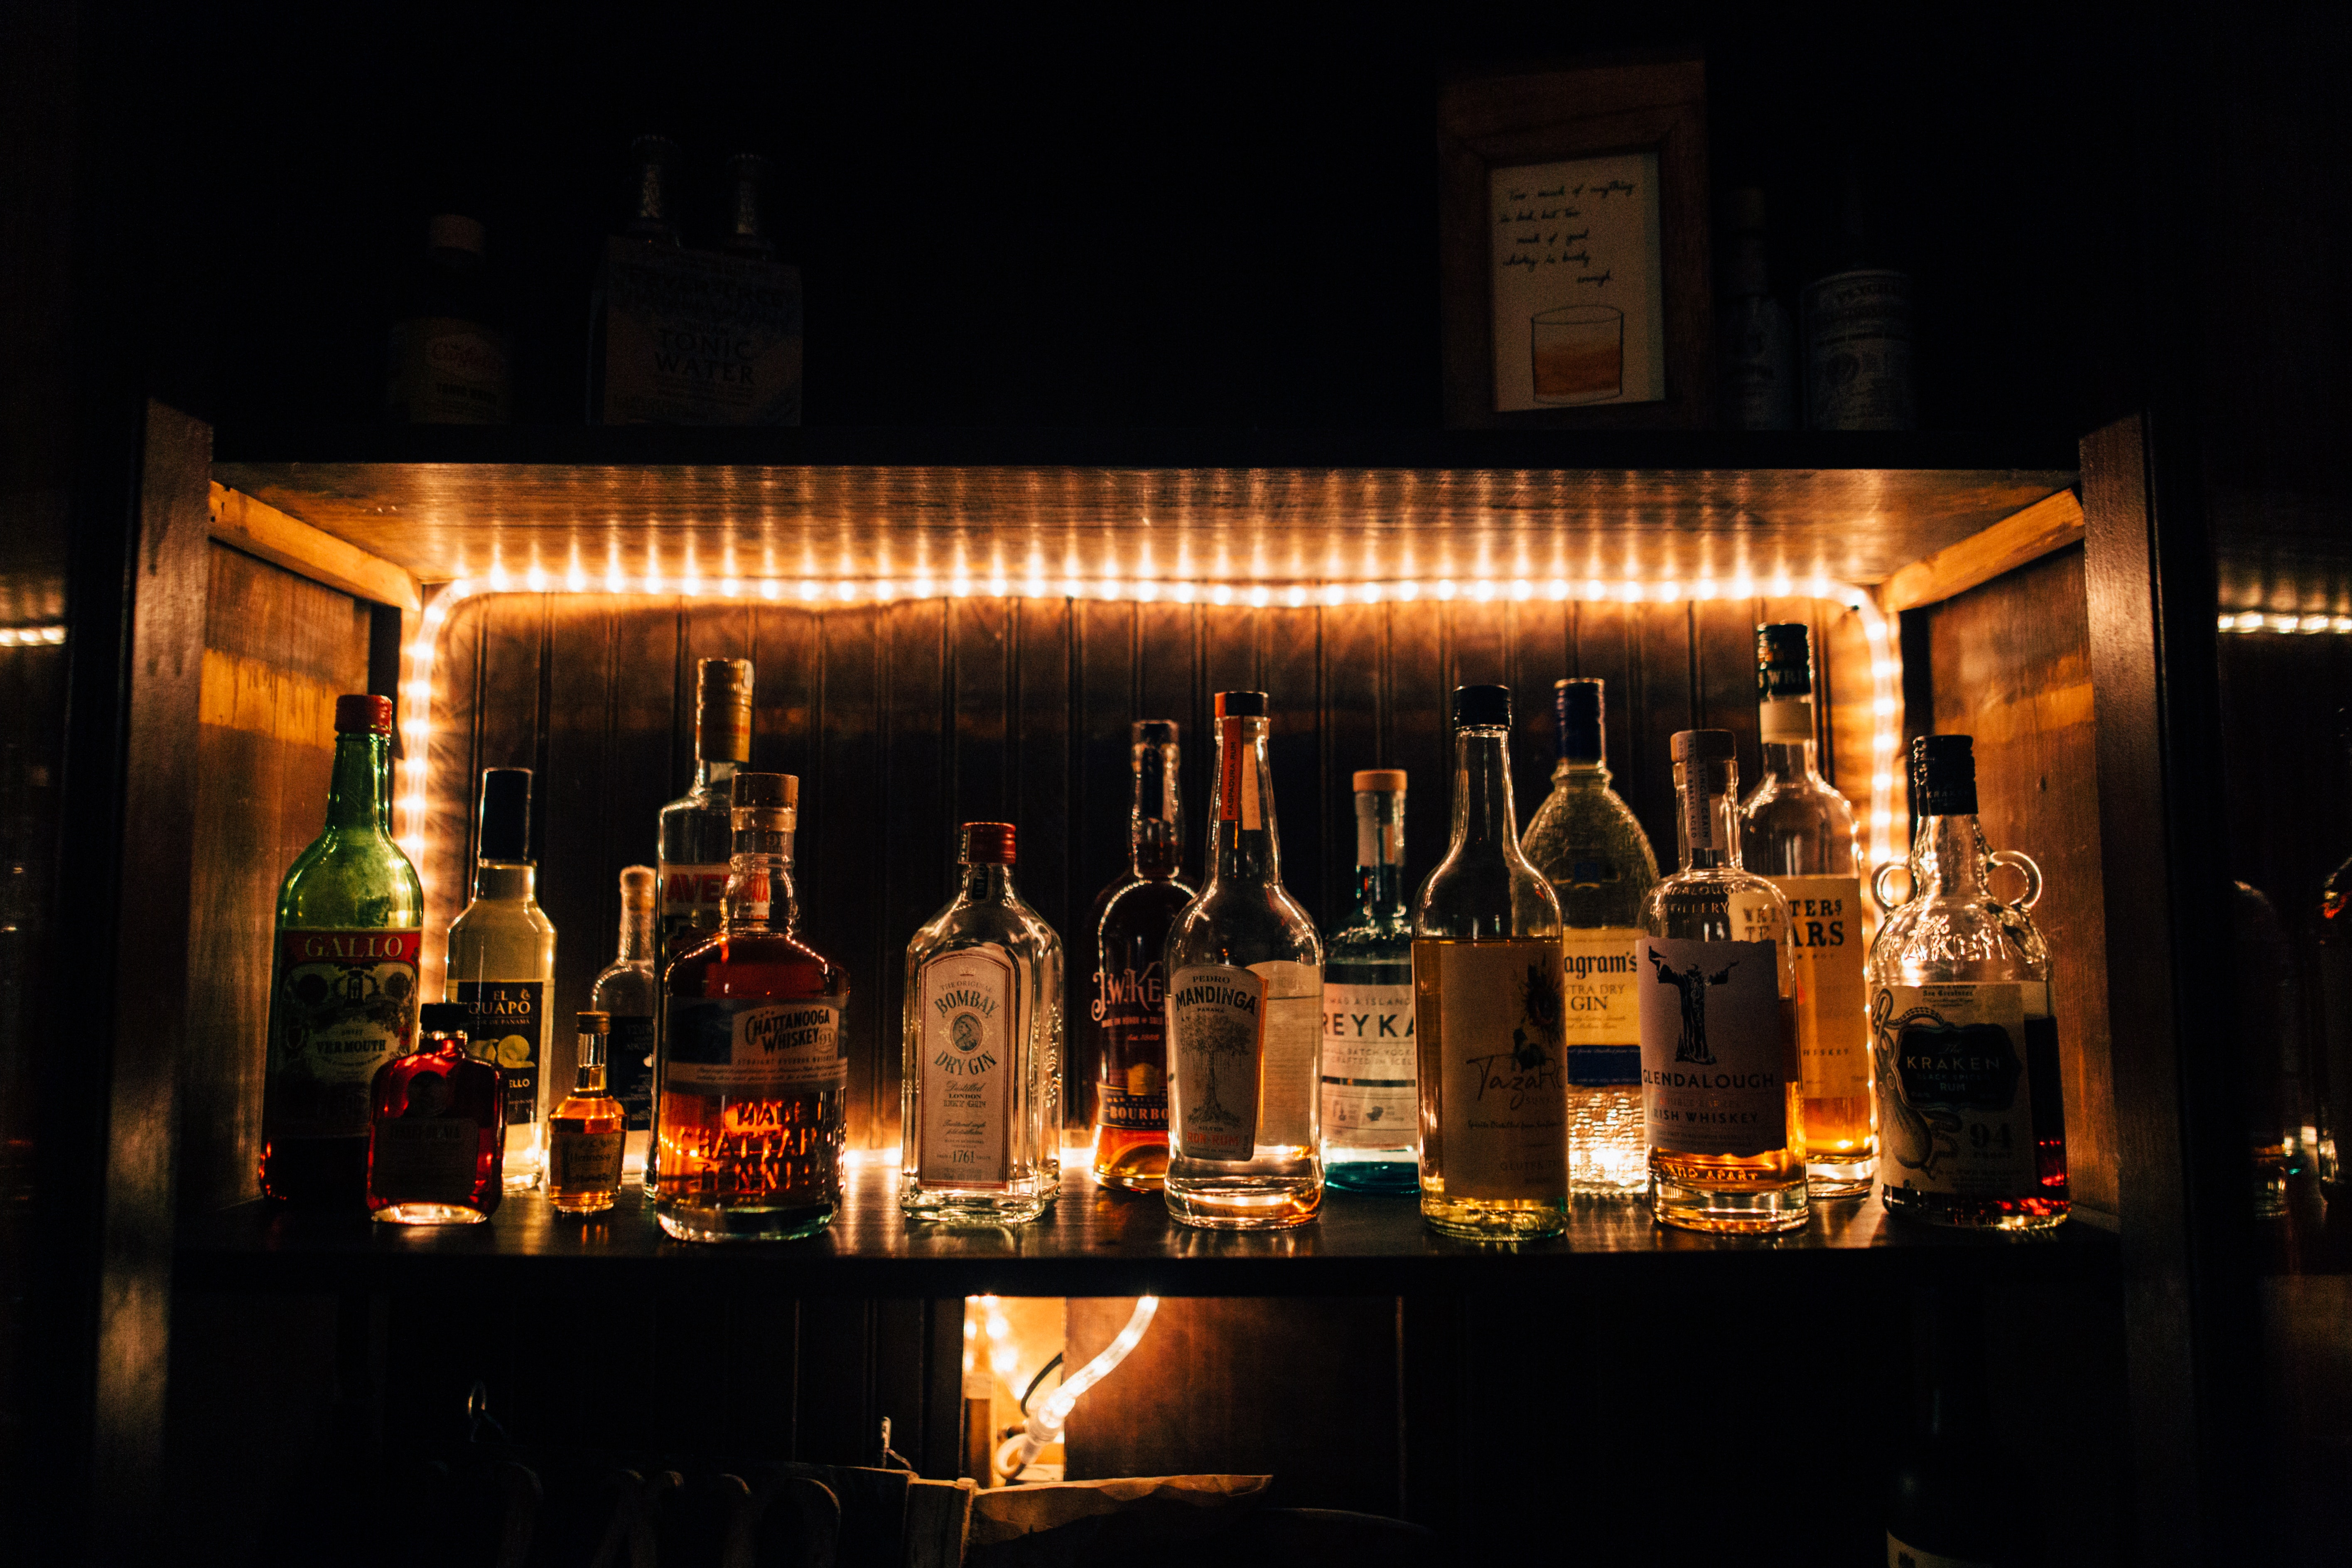 Alcohol, Souvenirs to bring back from Iceland